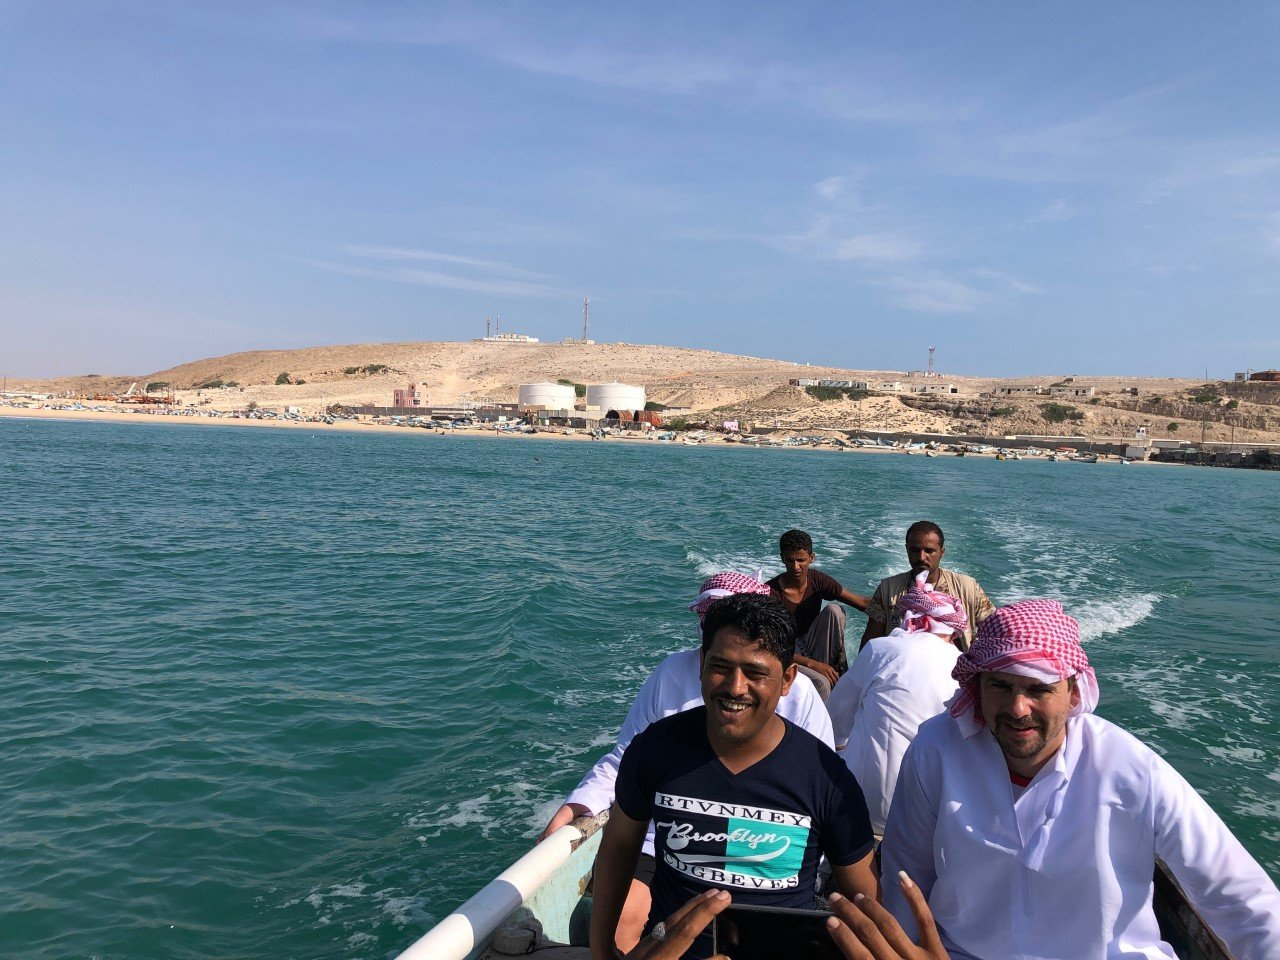 Cruising with the locals in a wooden fishing boat - we only capsized about three times and weren't sure if that shadow in the distance were pirates. Photo credit: Lisa Pagotto